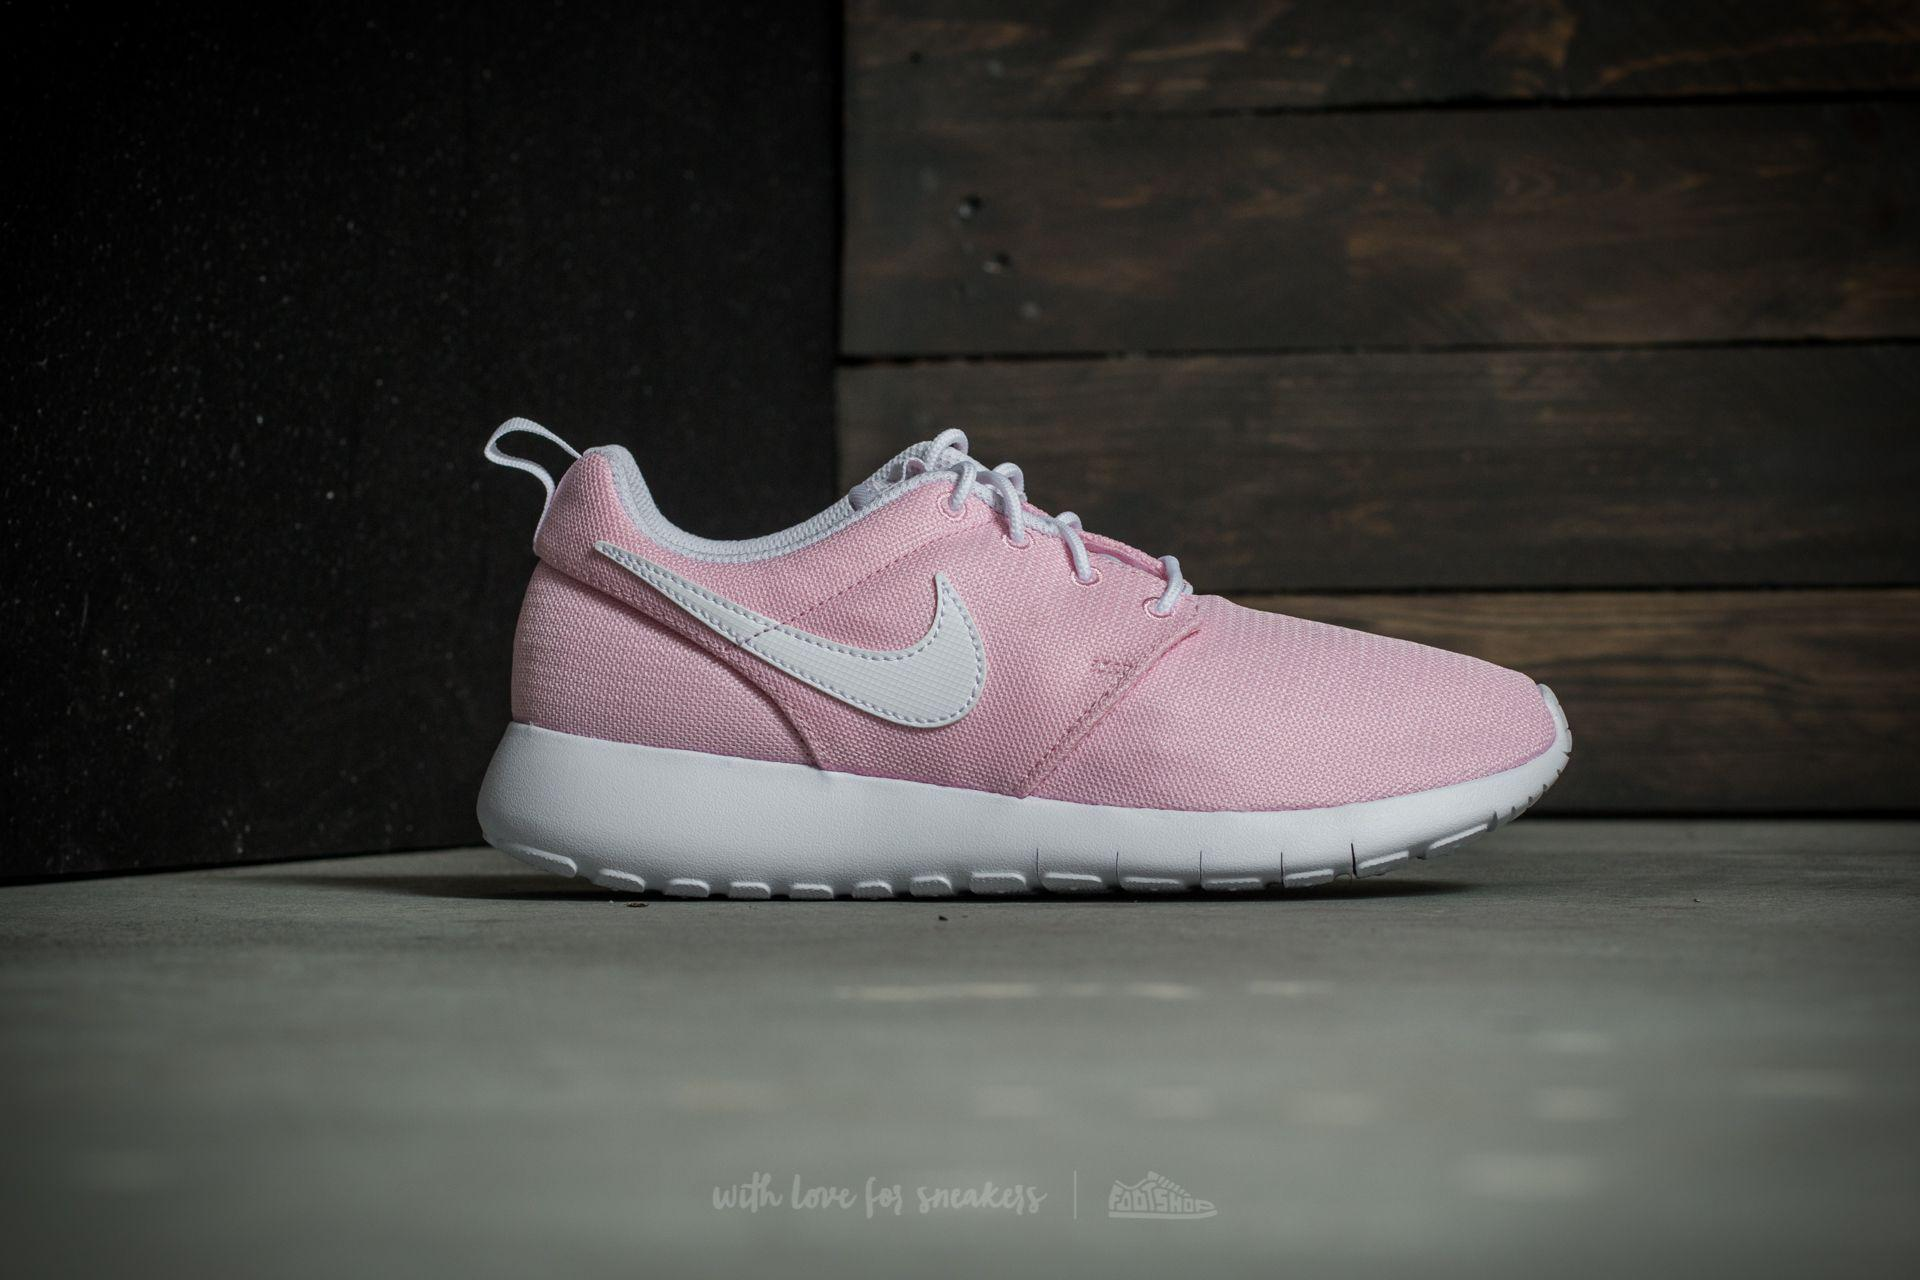 low priced 1d22c f3111 Lyst - Nike Roshe One (gs) Prism Pink  White-safety Orange in Pink